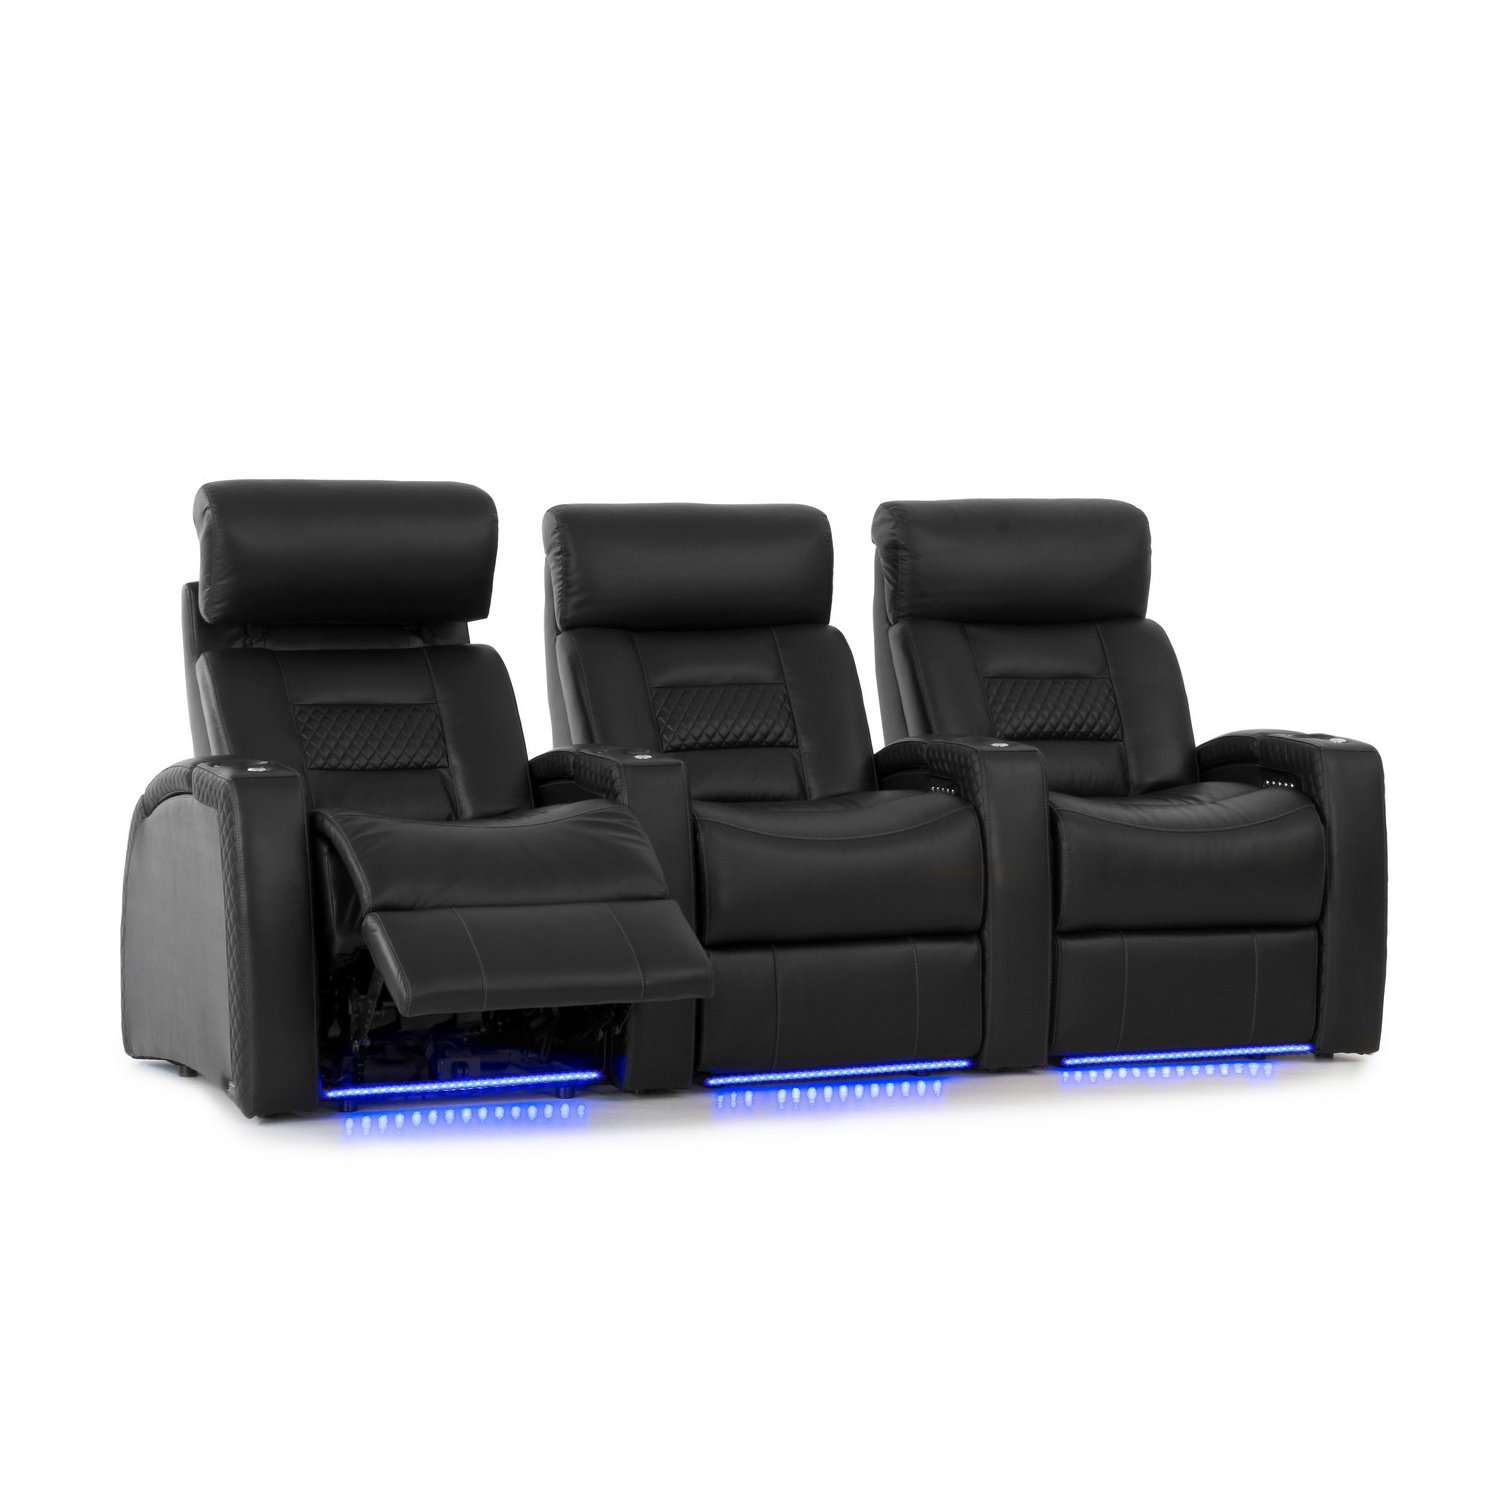 Octane Seating Flex HR Home Theatre Seating - Black Top Grain Leather - Power Recline - Lighted Cup Holders - Row of 3 Seats by Octane Seating